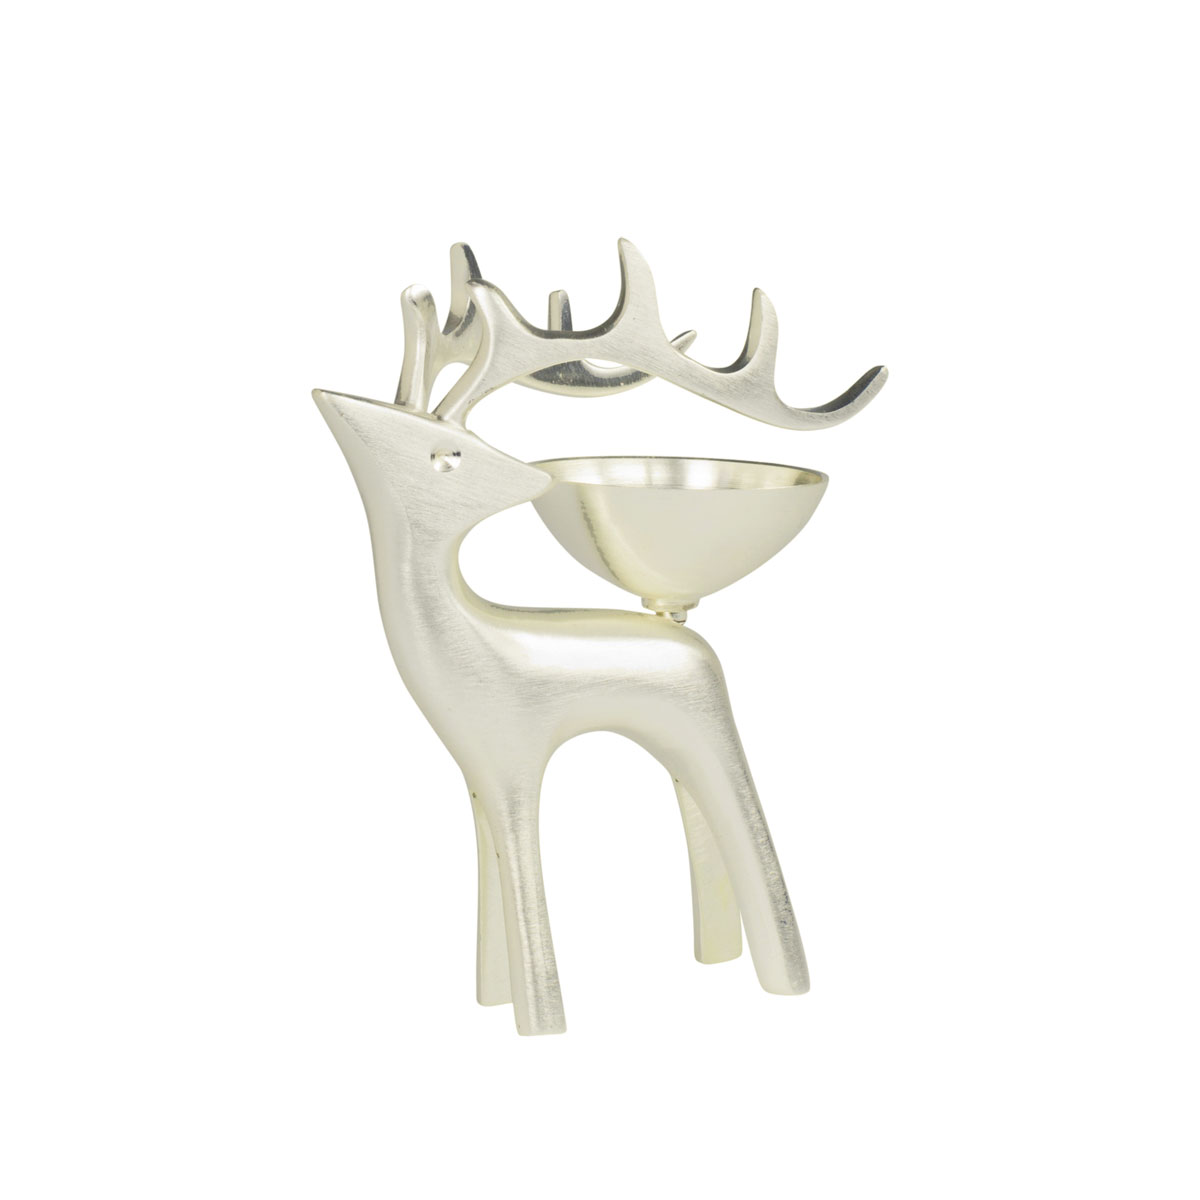 Pentik Reindeer Candle Holder - Holiday Home Accents